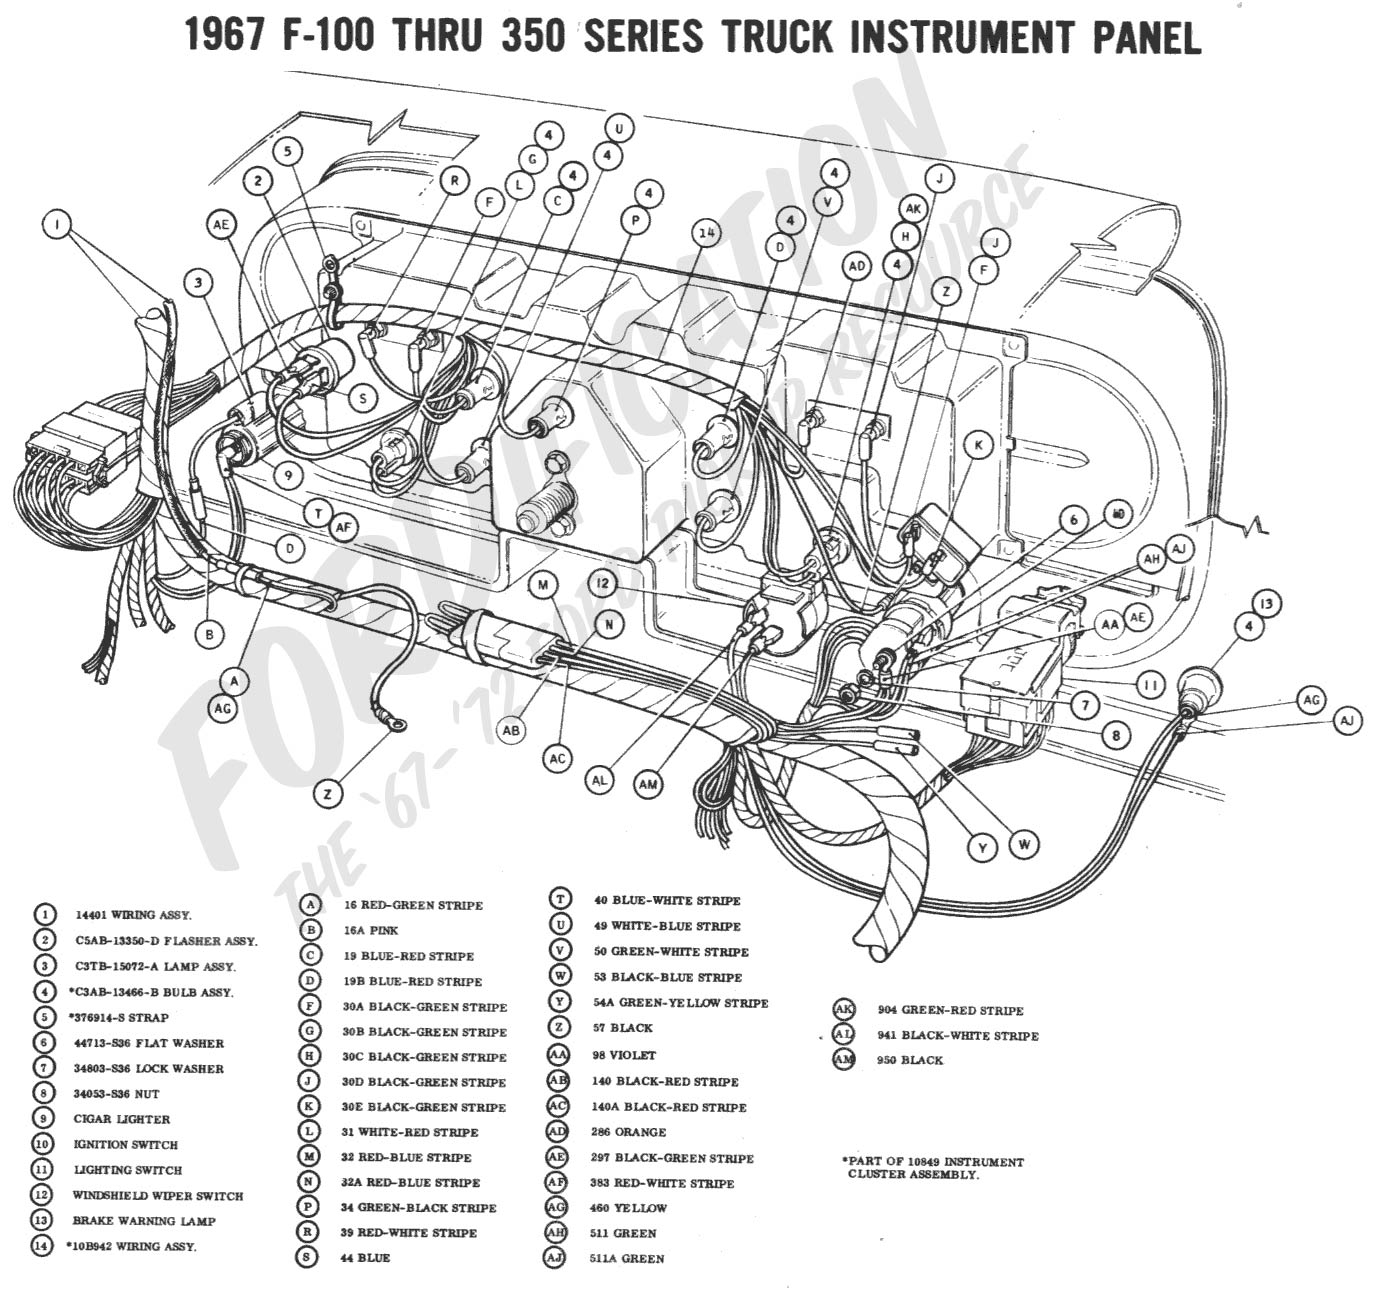 Showthread furthermore Schematics h furthermore Wiring Diagram Interior Car Light Ford 2007 F 350 also T5 Info Page additionally 500814 1964 Falcon Steering Column Exploded View. on 65 chevy truck wiring diagram